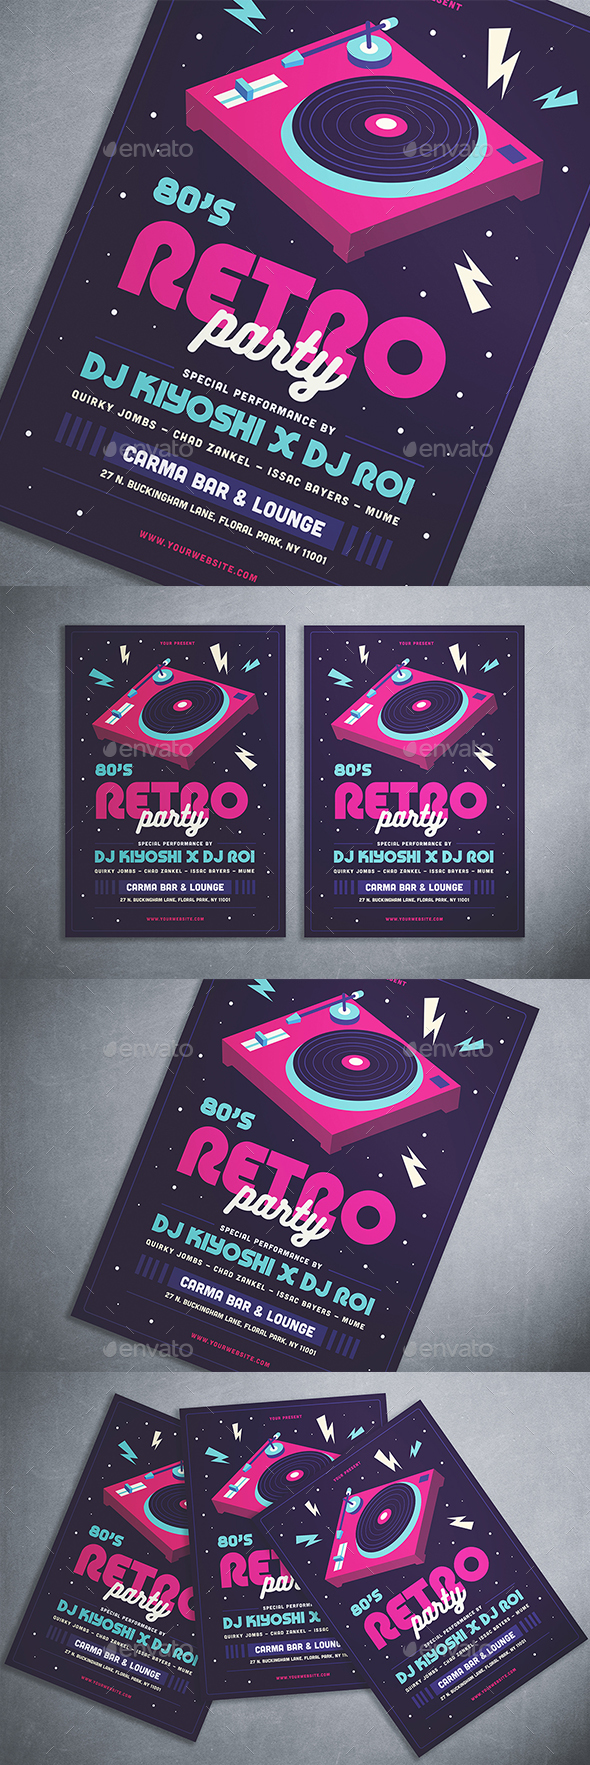 80's Retro Party Flyer - Clubs & Parties Events